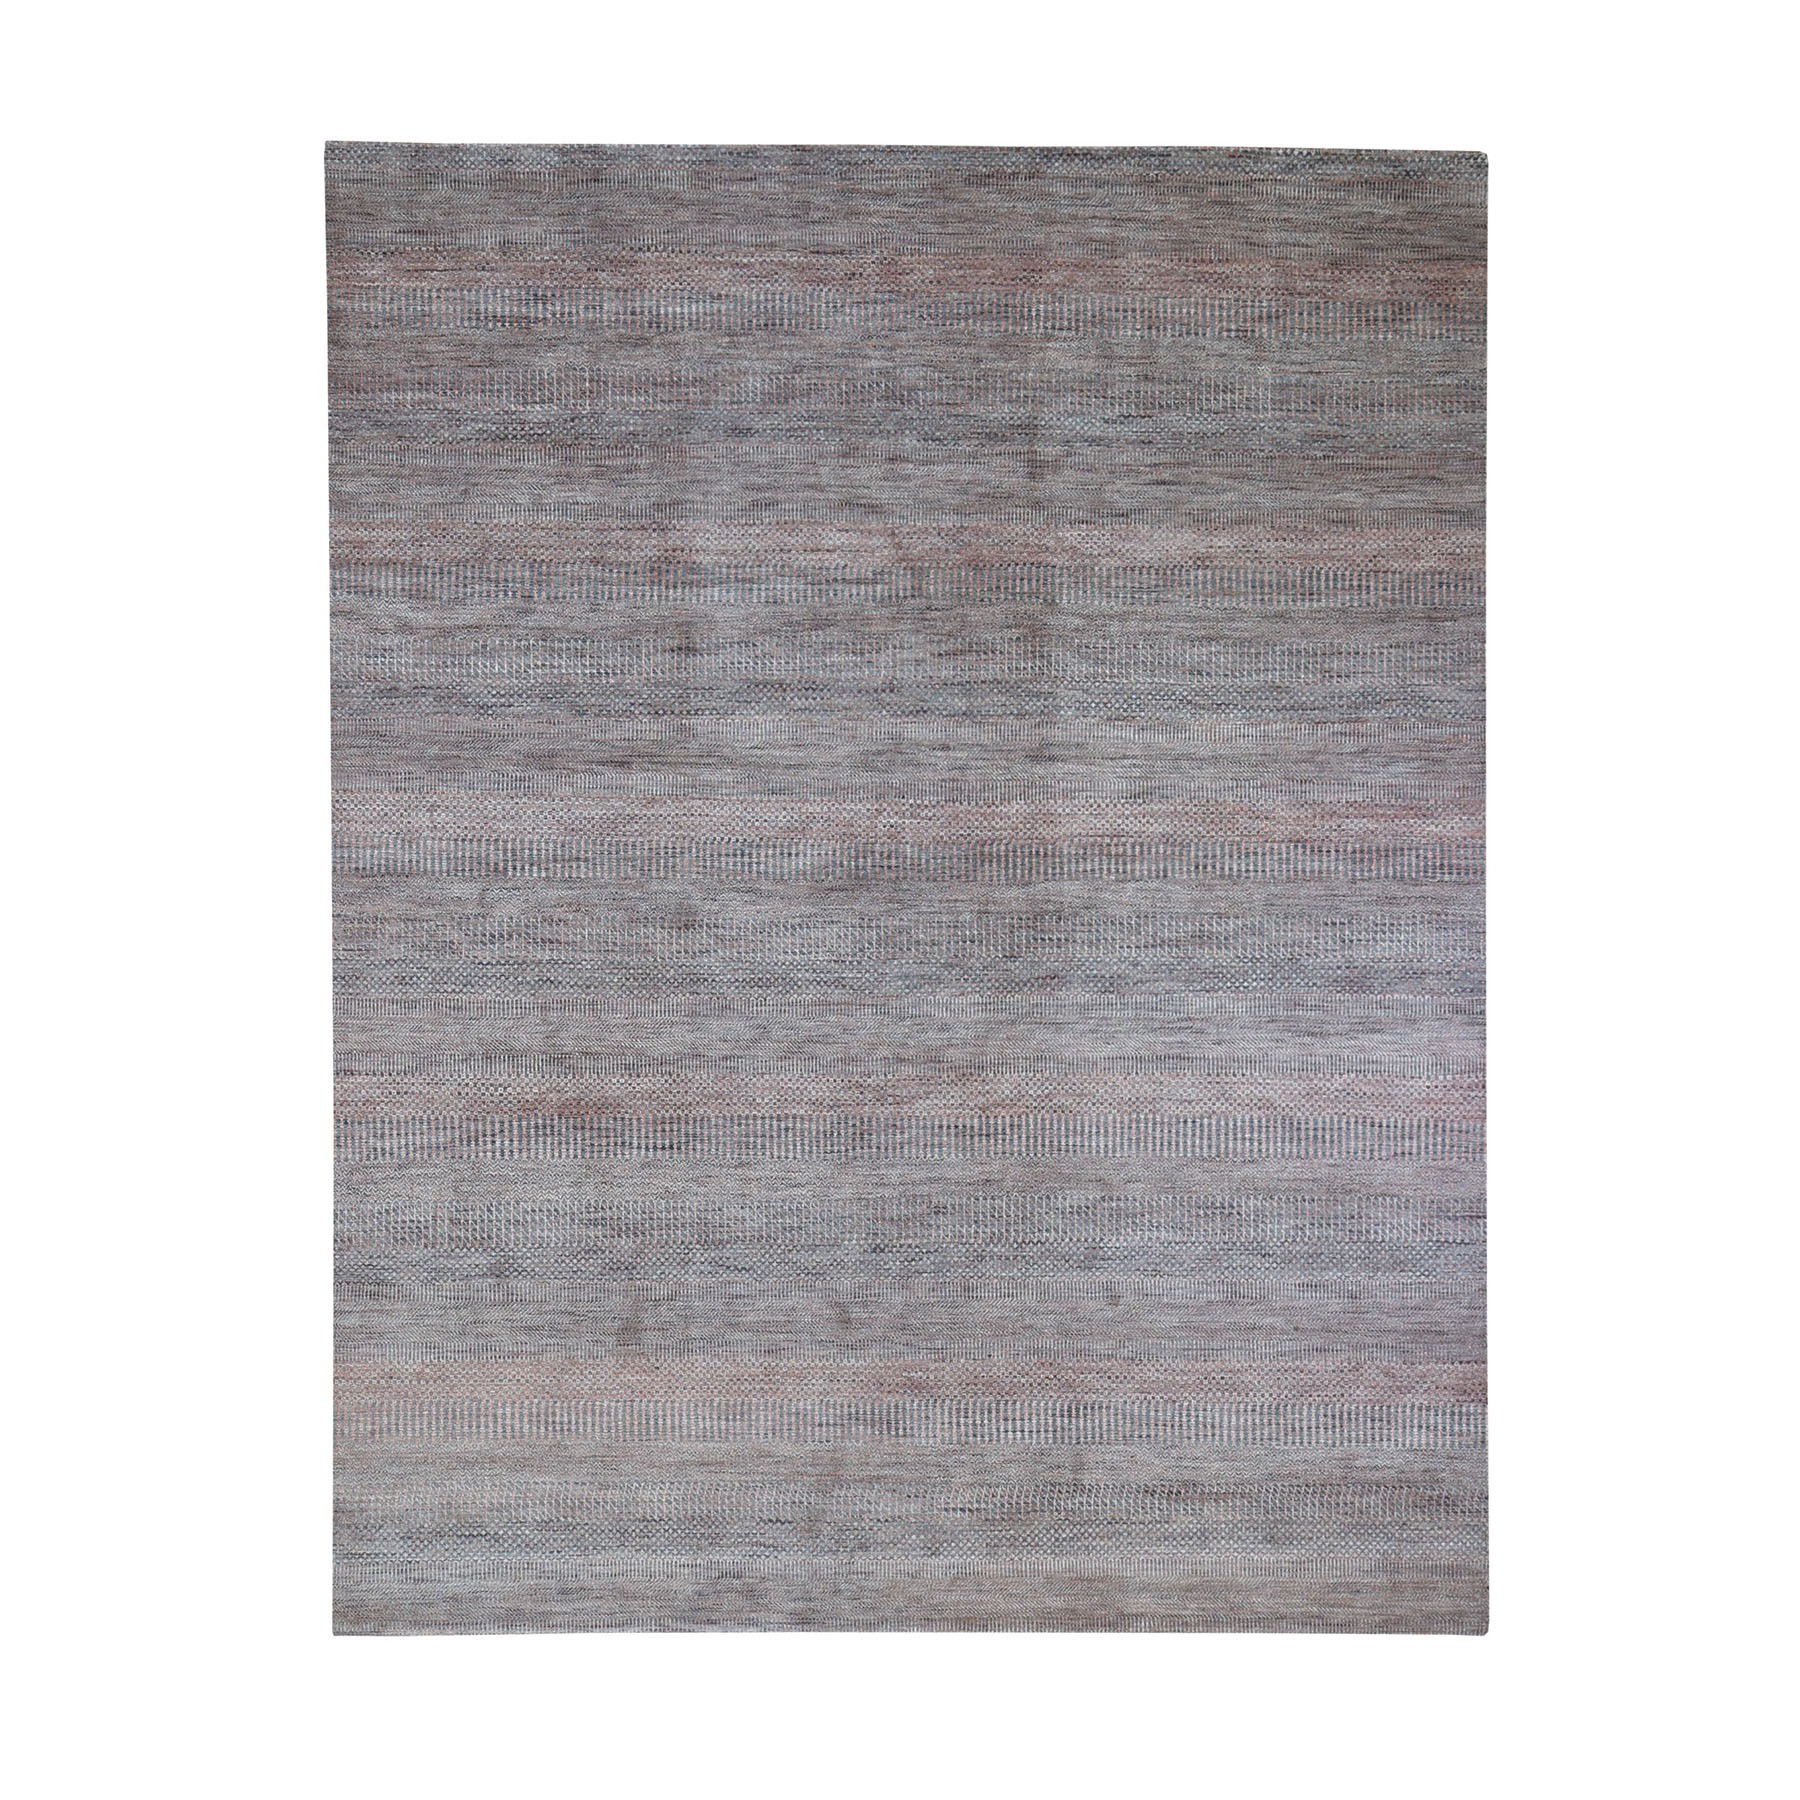 Modern & Contemporary Rugs LUV536409